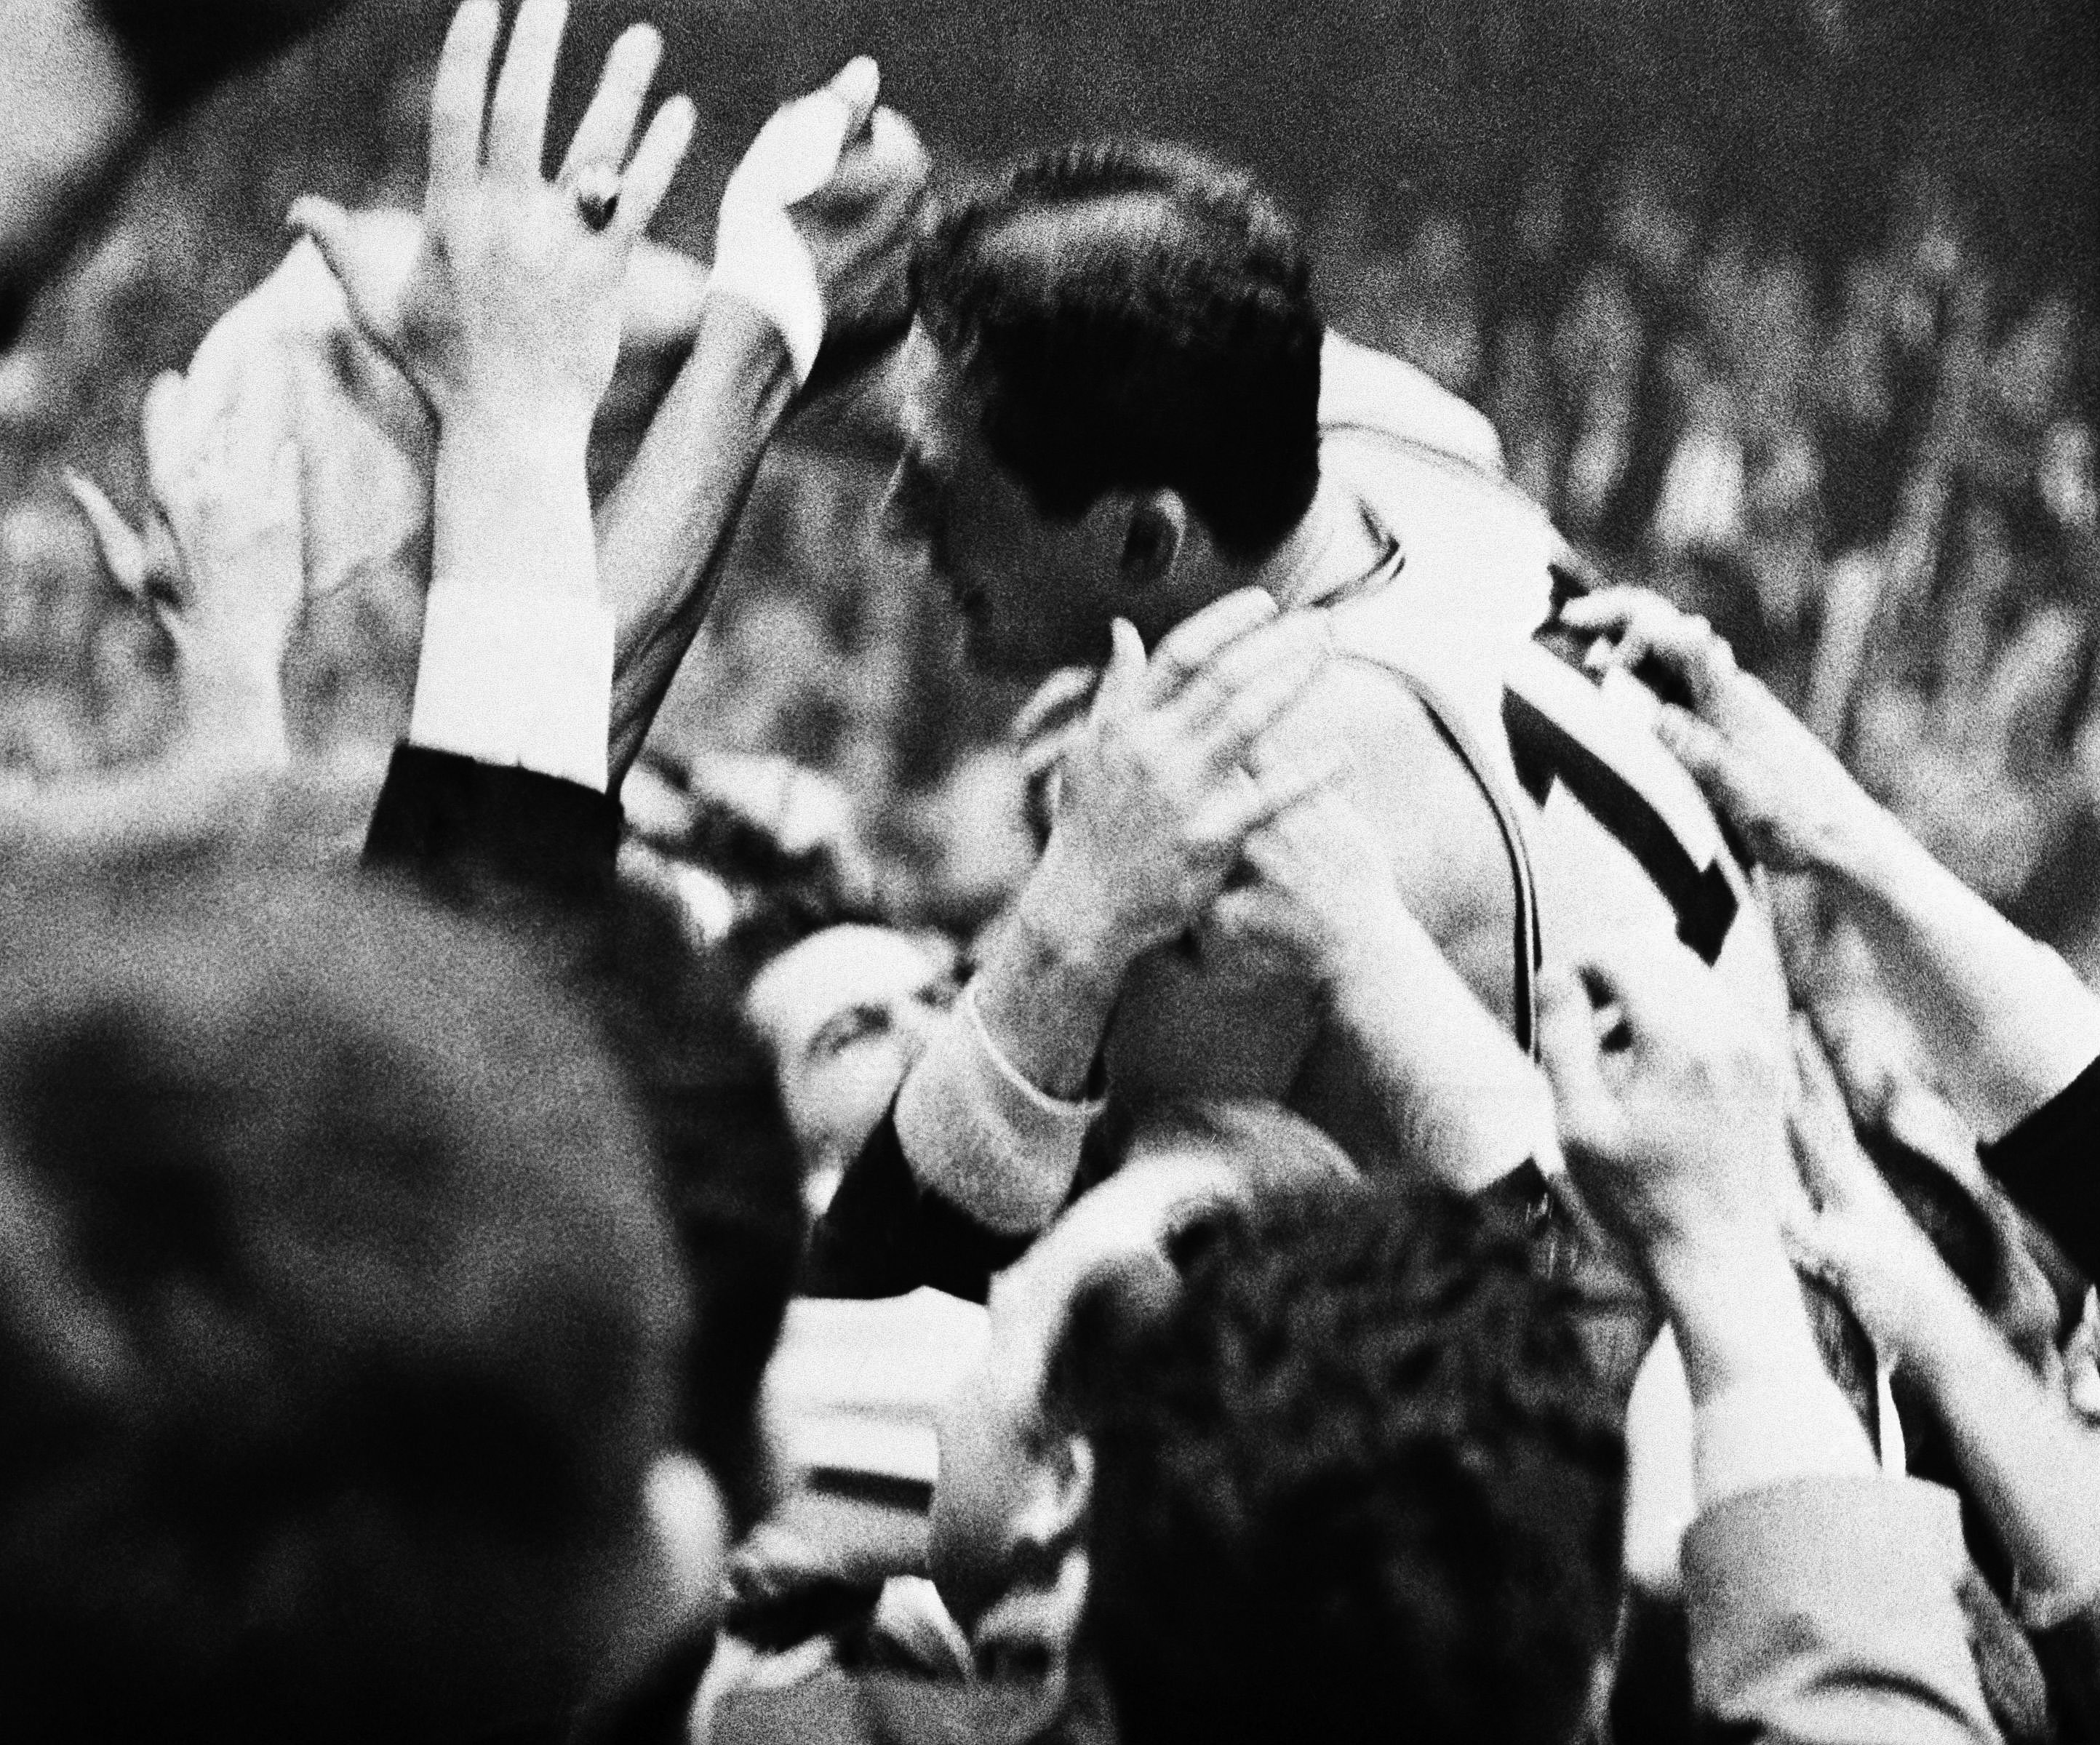 John Havlicek is mobbed by fans after intercepting the 76ers´ inbounds pass in the final seconds of the game to seal the Celtics´ Game 7 win. Boston went on to win the NBA championship.